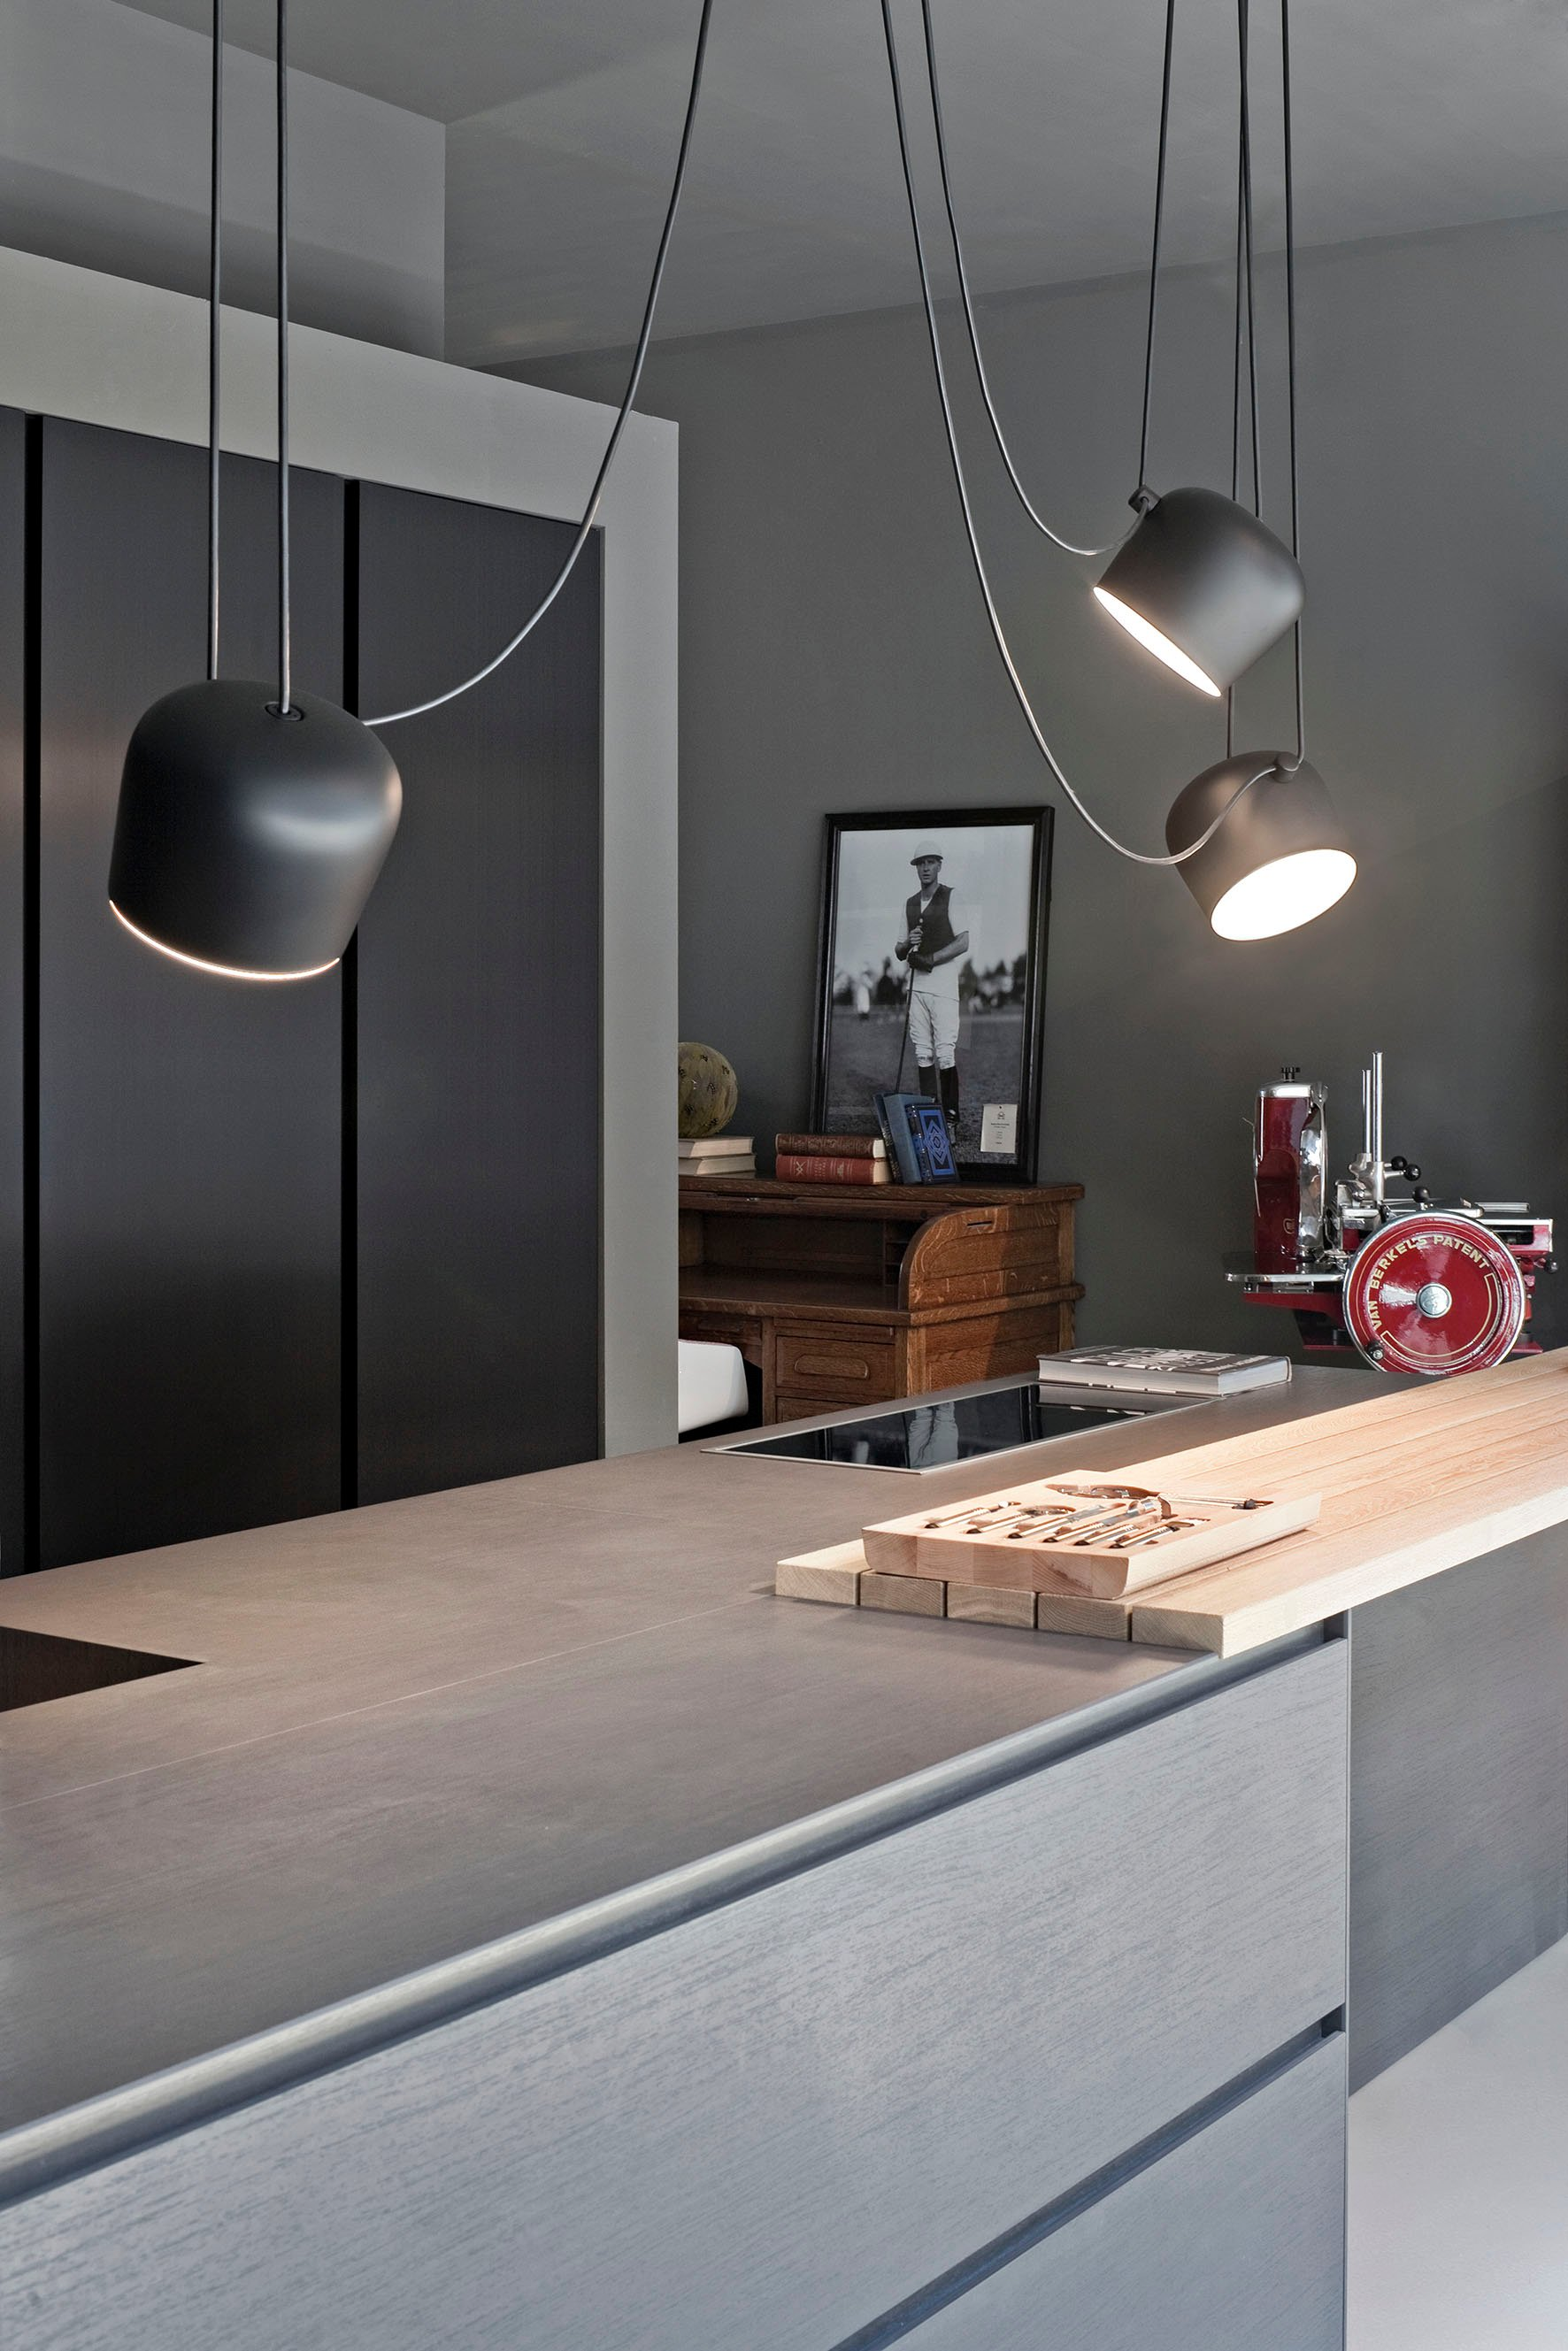 moderne led beleuchtung als helligkeit des 21. Black Bedroom Furniture Sets. Home Design Ideas